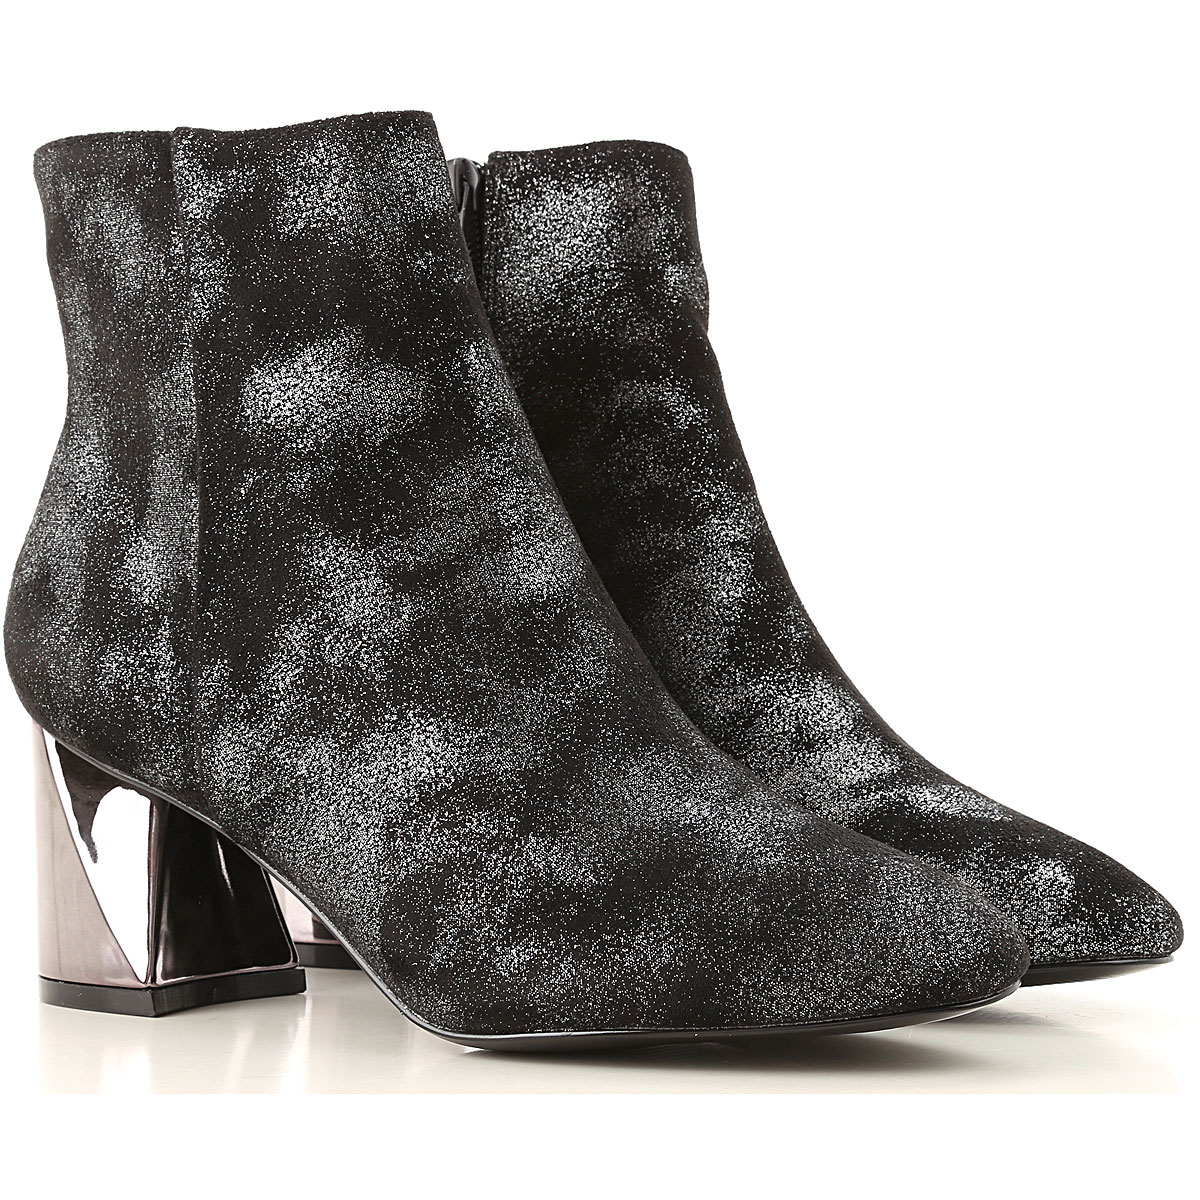 Kendall Kylie Boots for Women, Booties On Sale, Black, Suede leather, 2019, 6 6.5 7 8 8.5